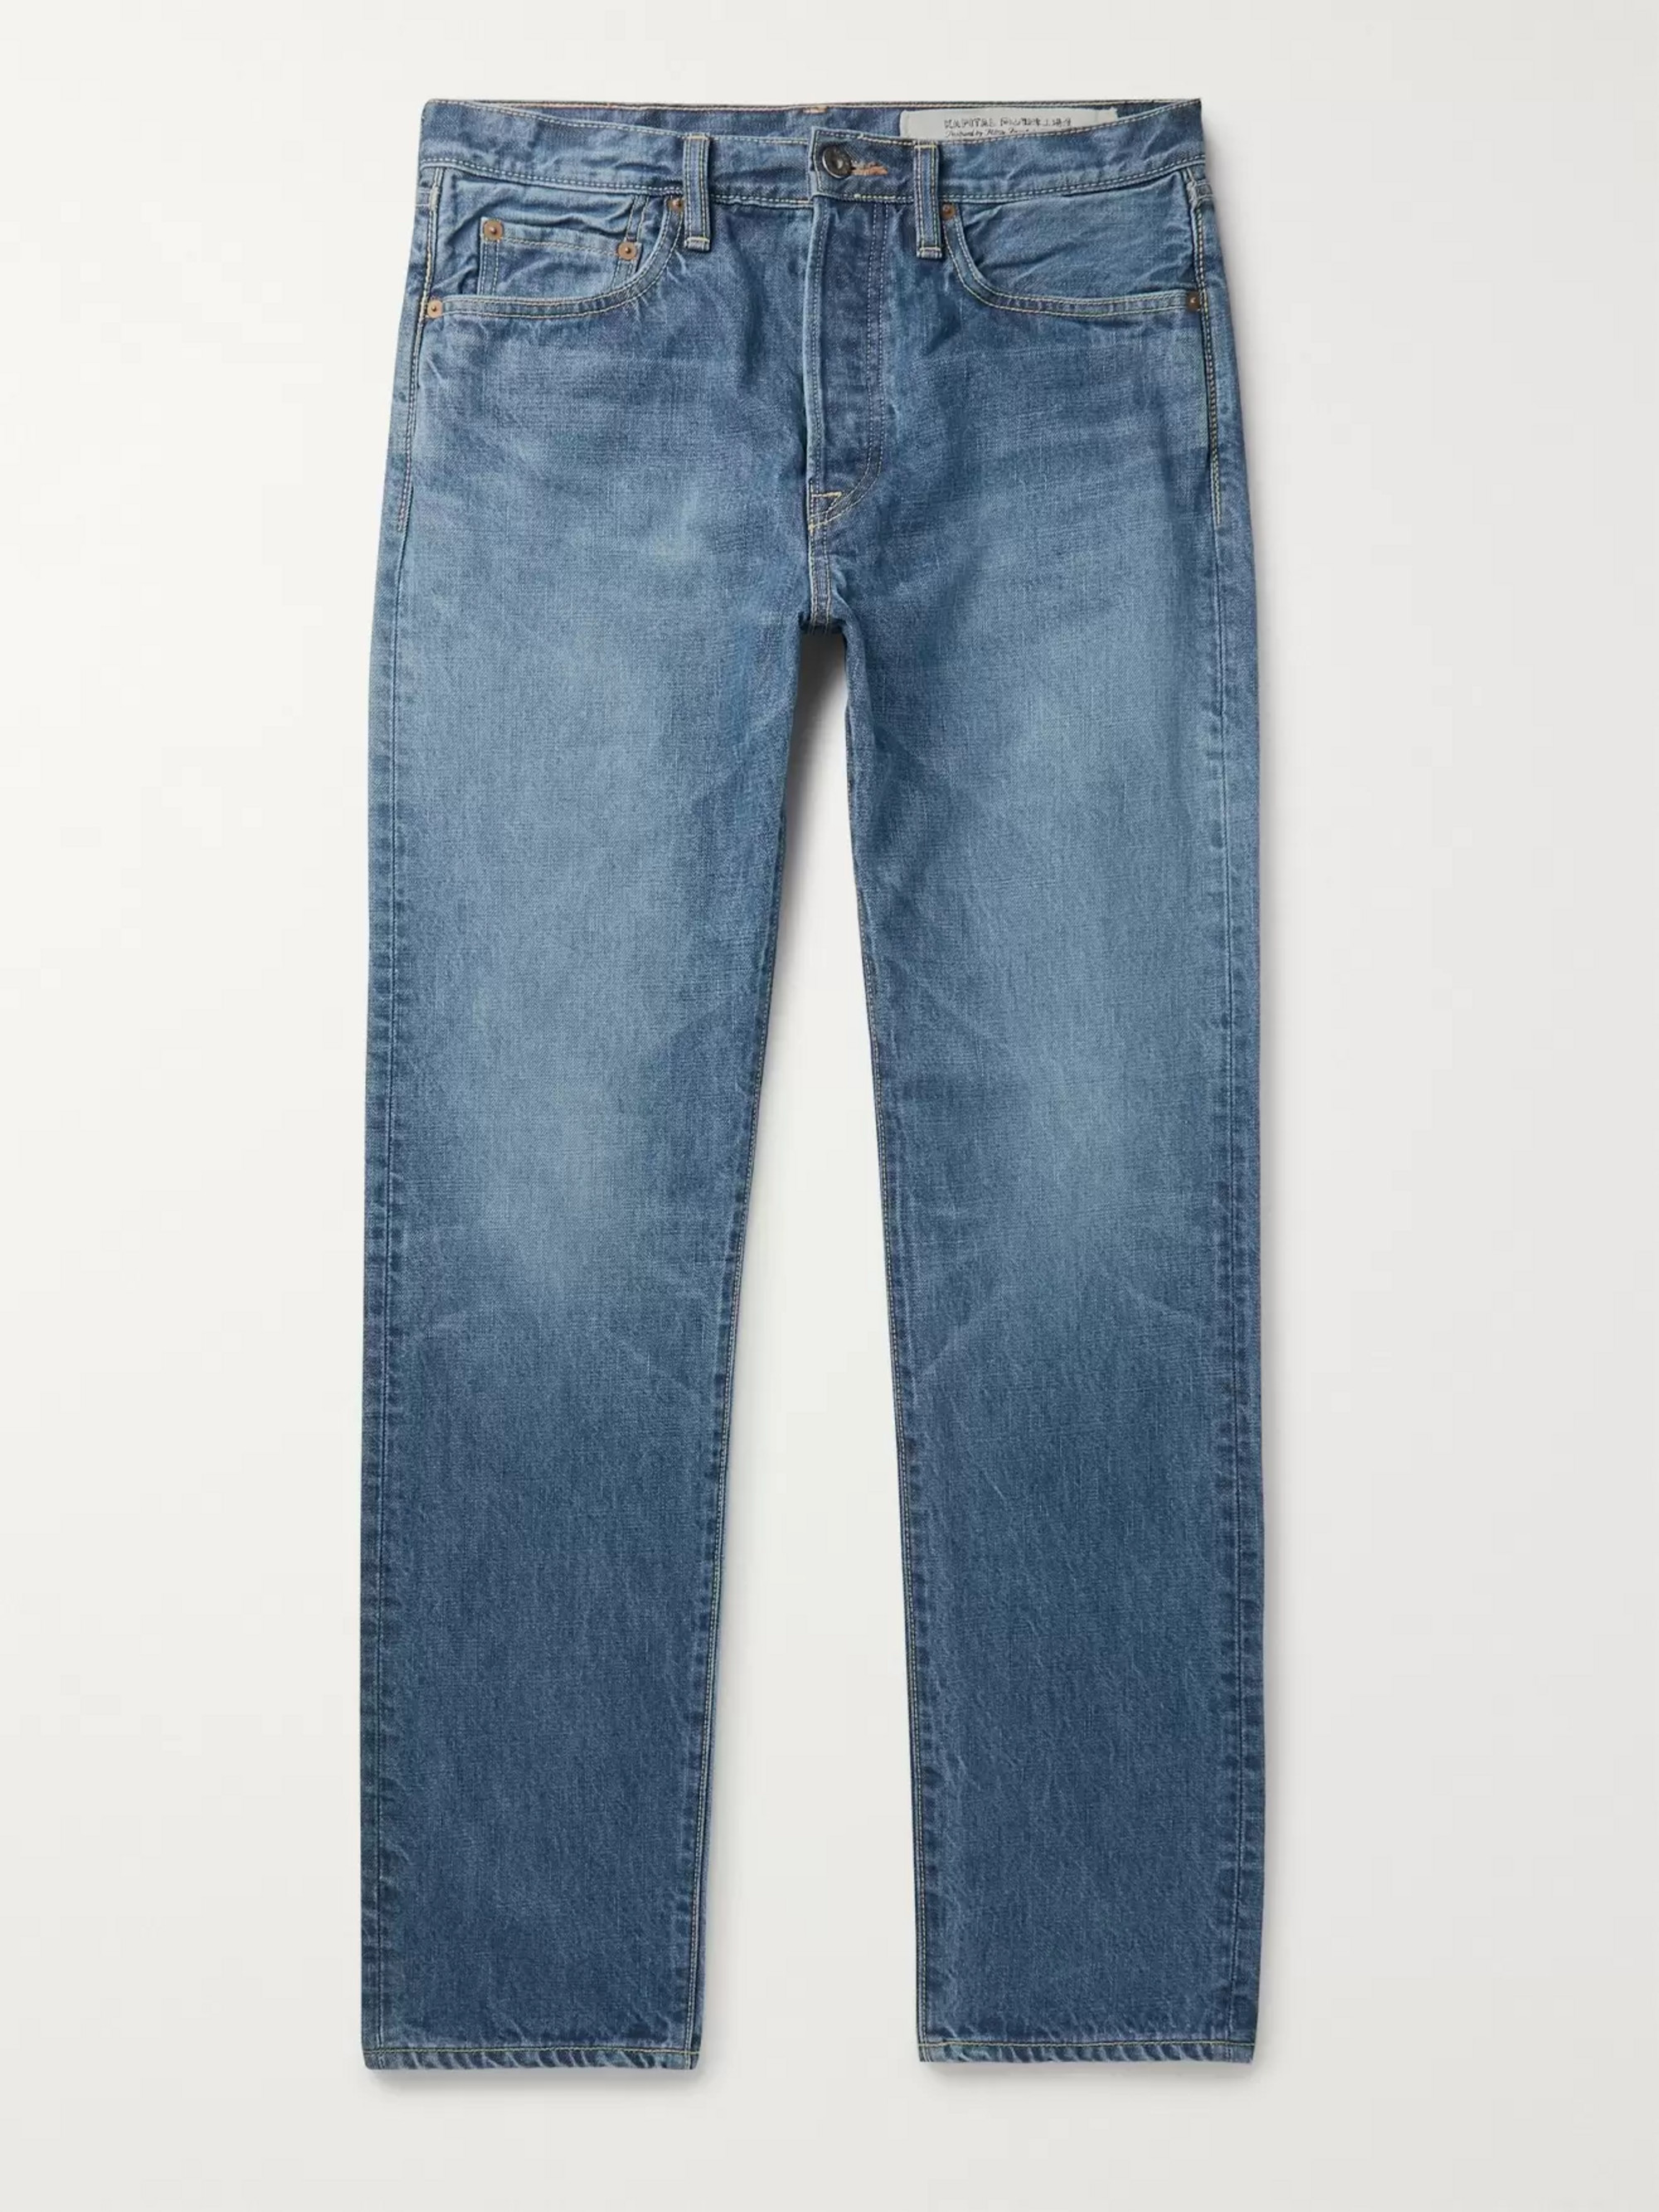 KAPITAL Slim-Fit Embroidered Denim Jeans